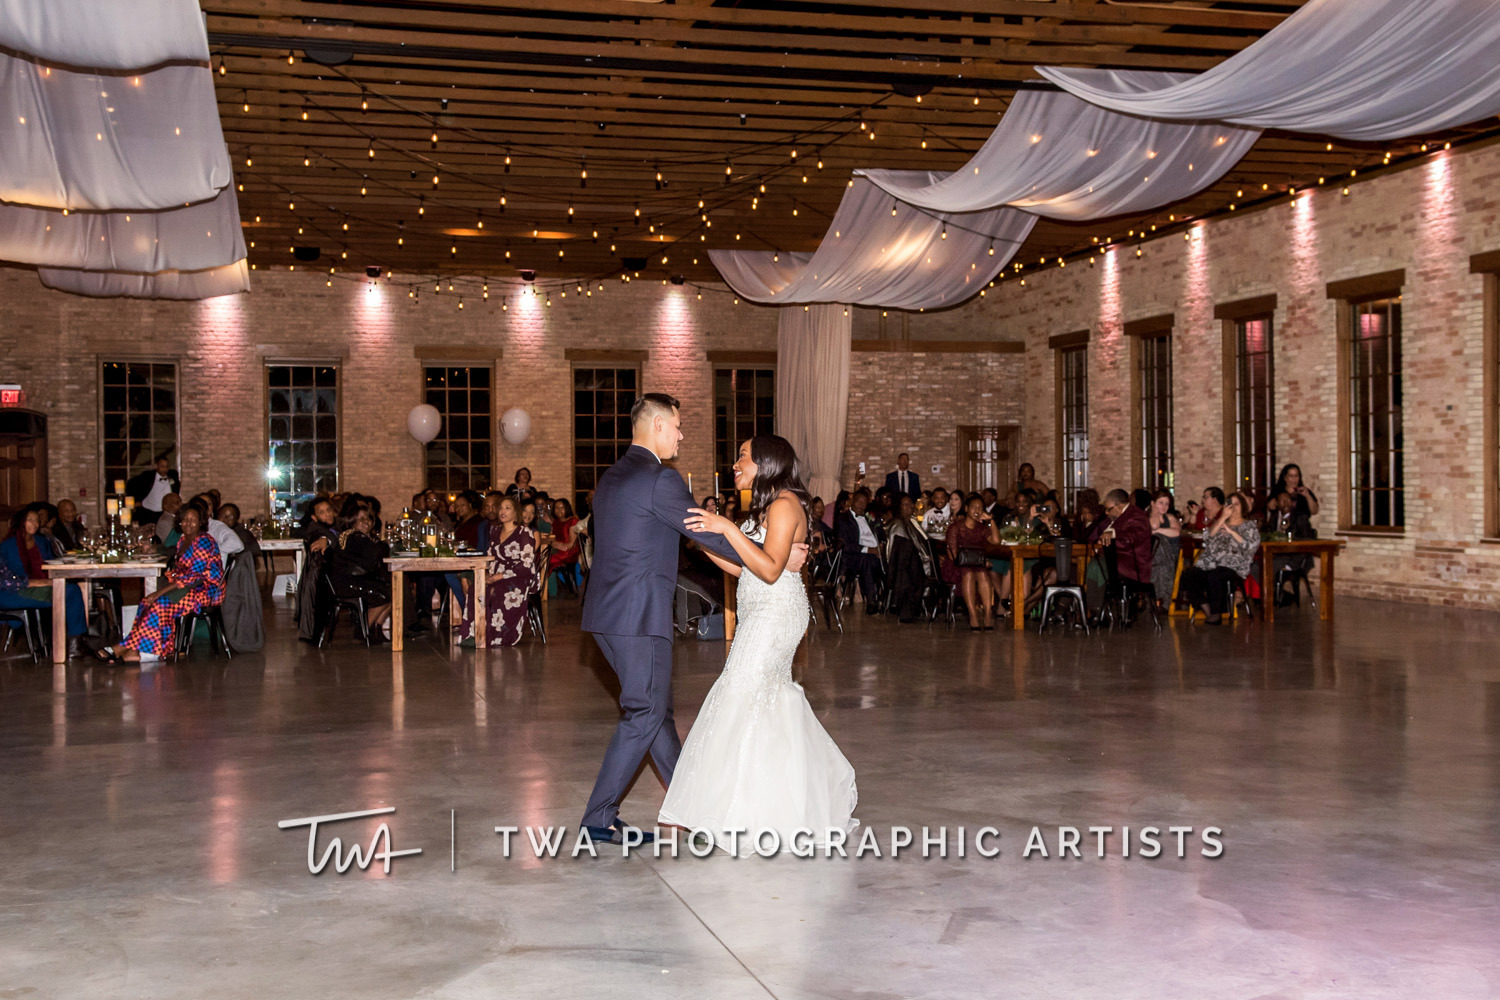 Chicago-Wedding-Photographer-TWA-Photographic-Artists-Brix-on-the-Fox_Johnson_Carrion_NO_DR-1017